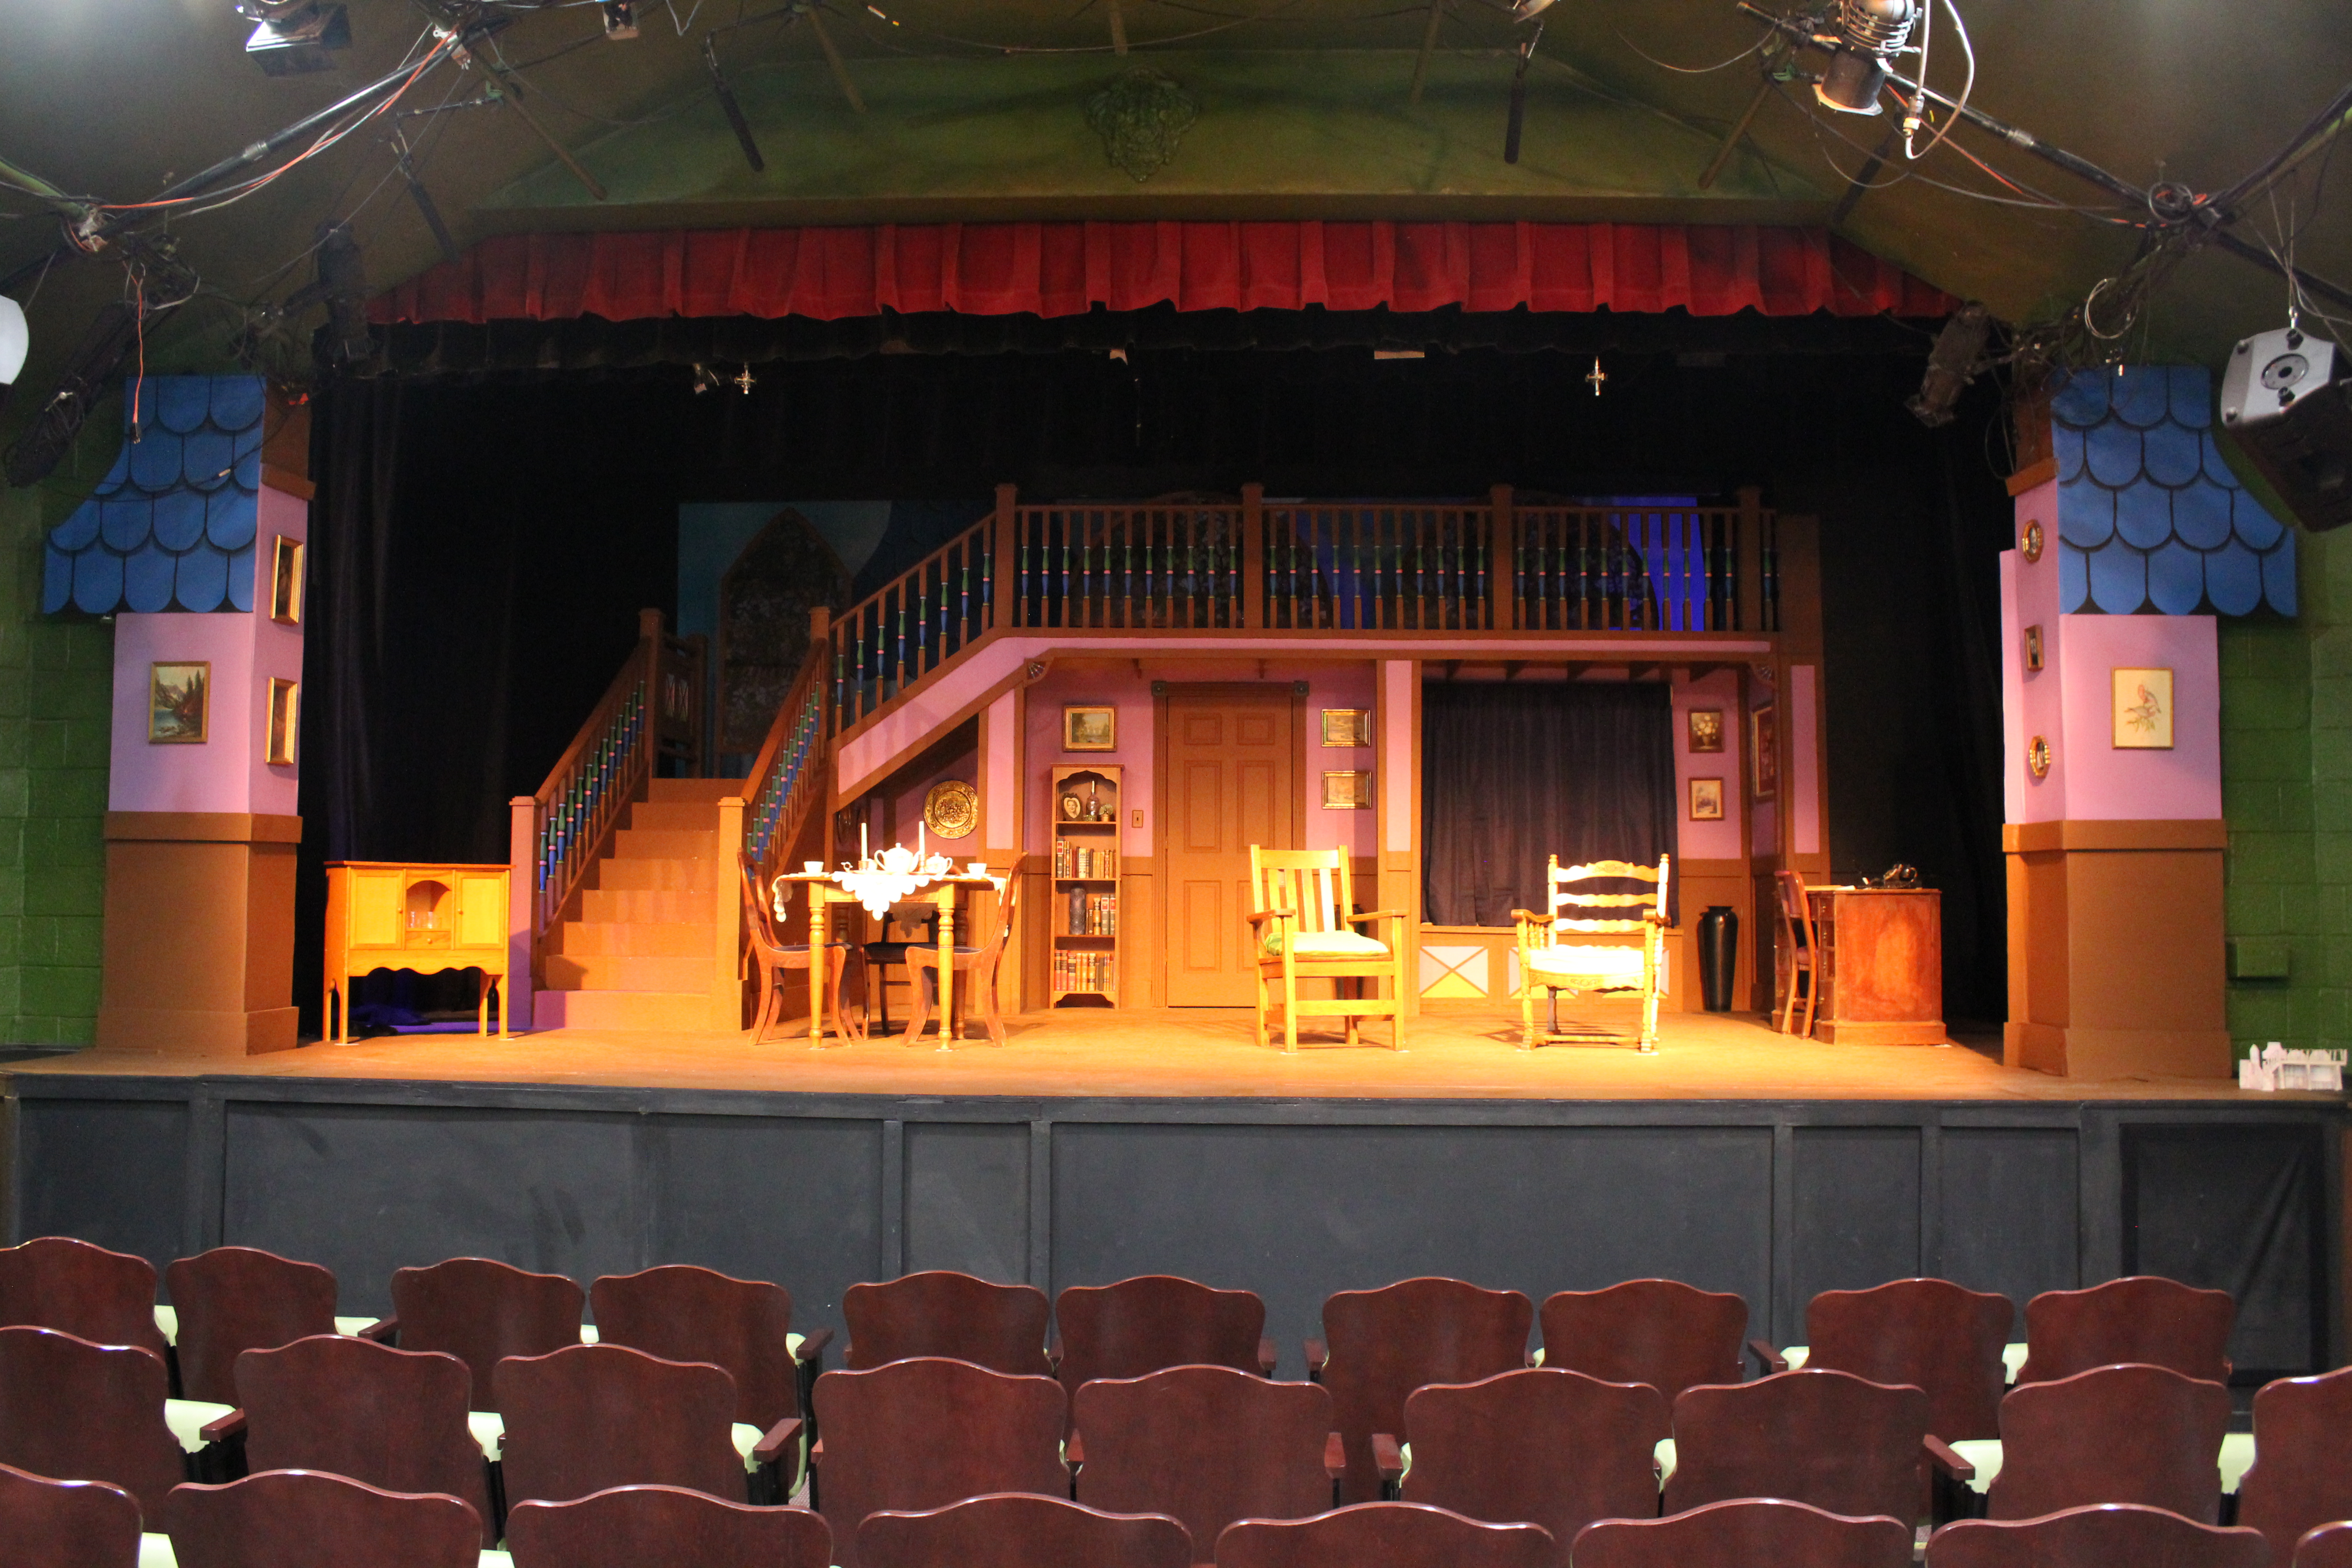 Completed set of Arsenic and Old Lace